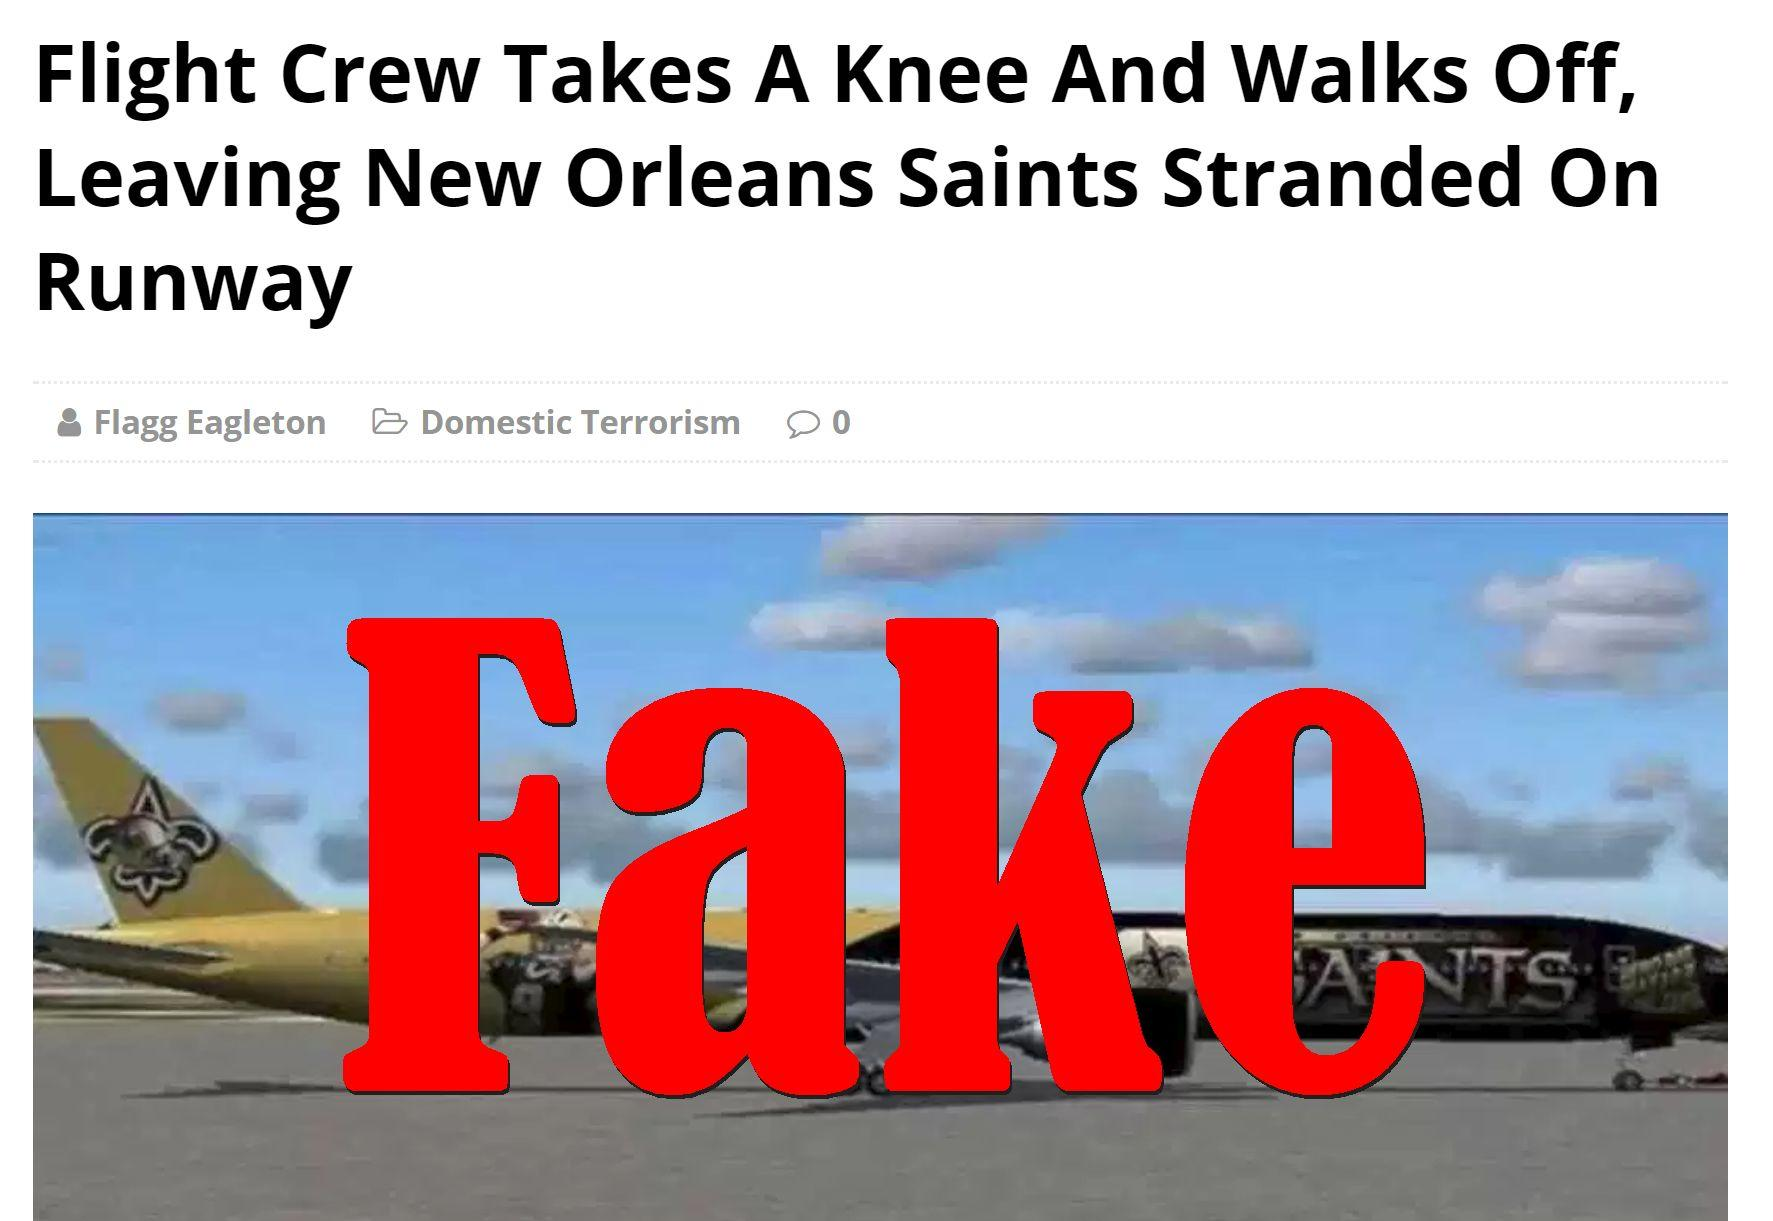 Fake News: Flight Crew Did NOT Take A Knee Leaving New Orleans Saints Stranded On Runway